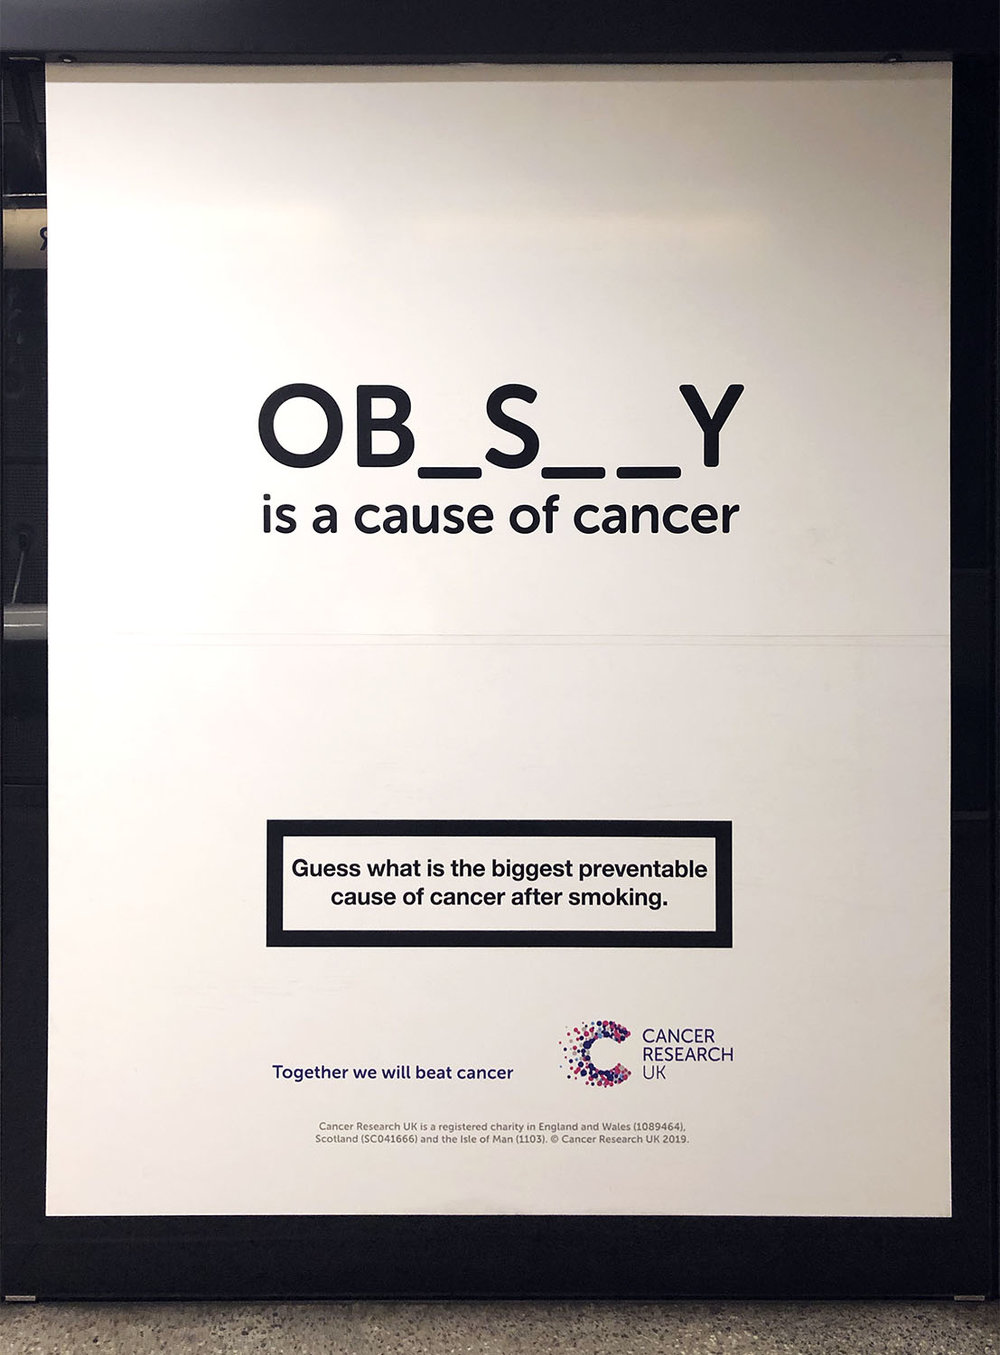 Obesity is a cause cancer